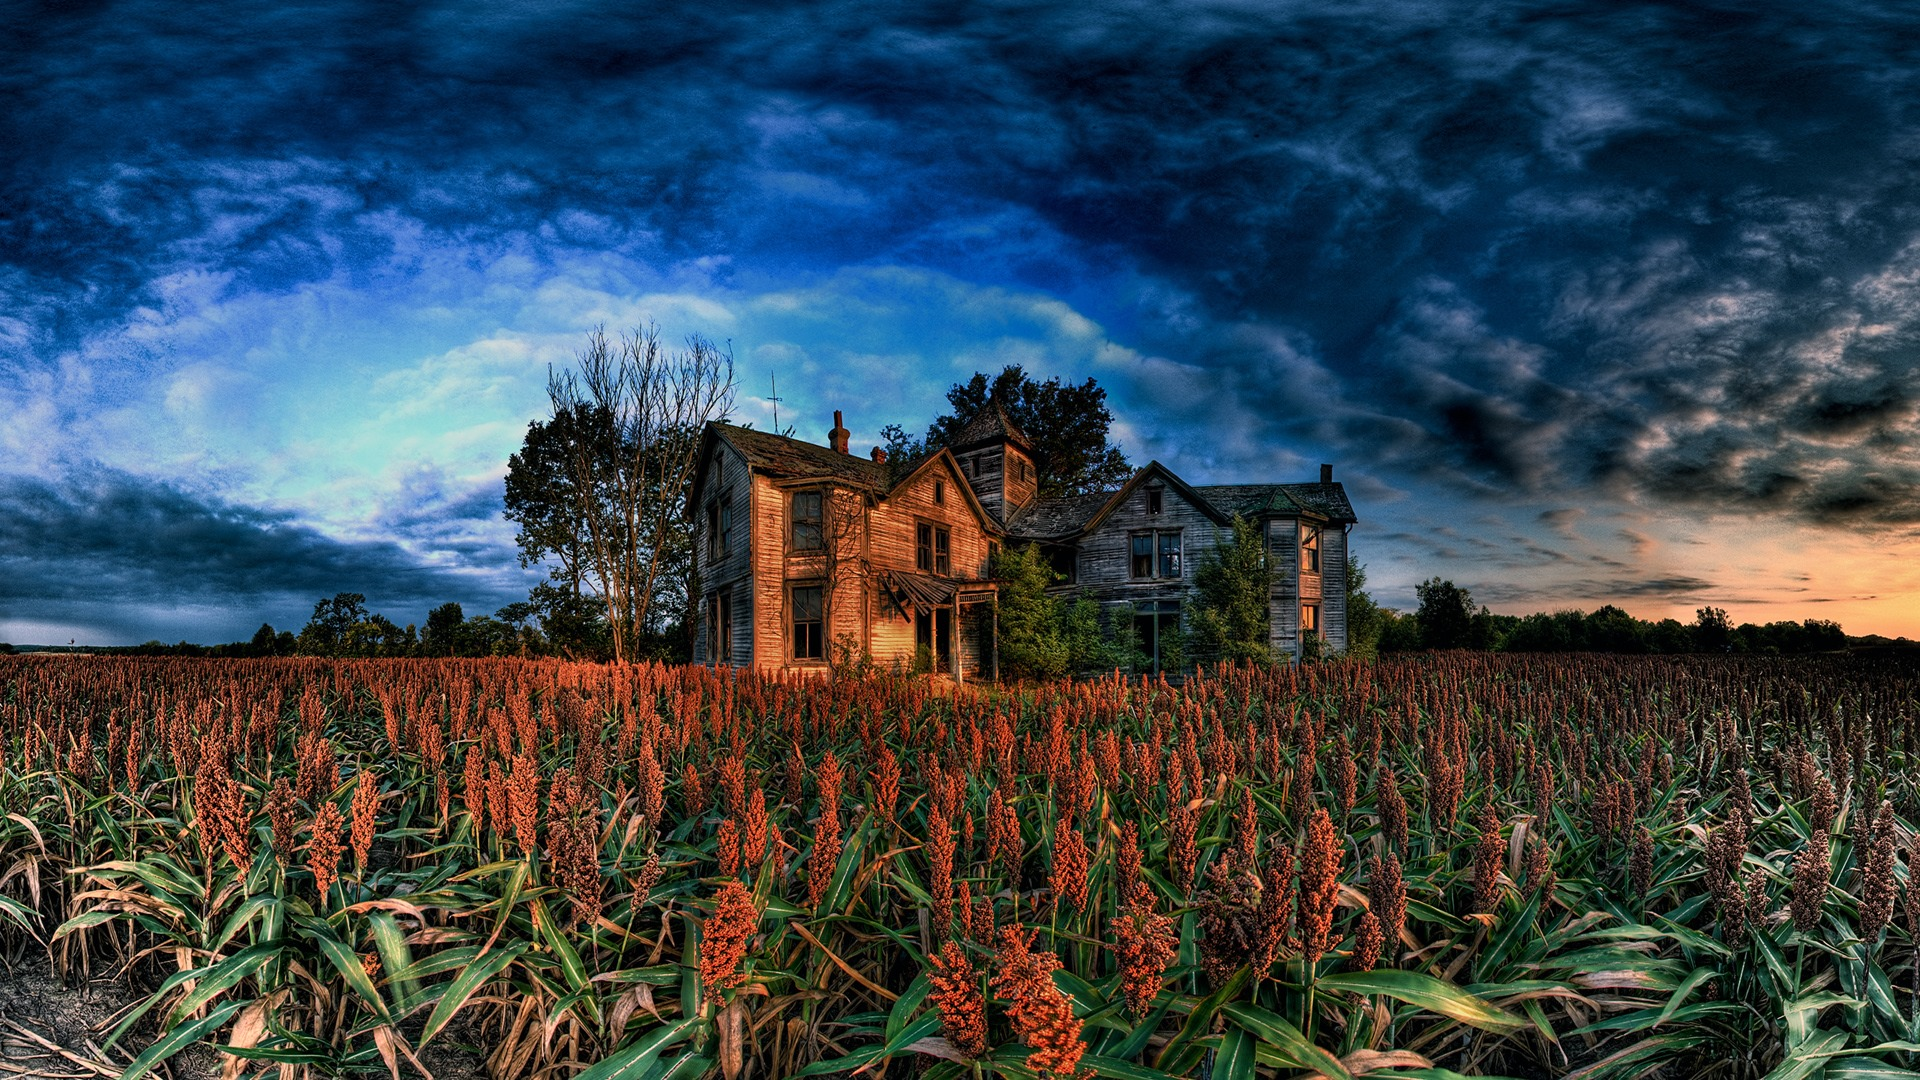 Edgewood Farm   High Definition Wallpapers   HD wallpapers 1920x1080